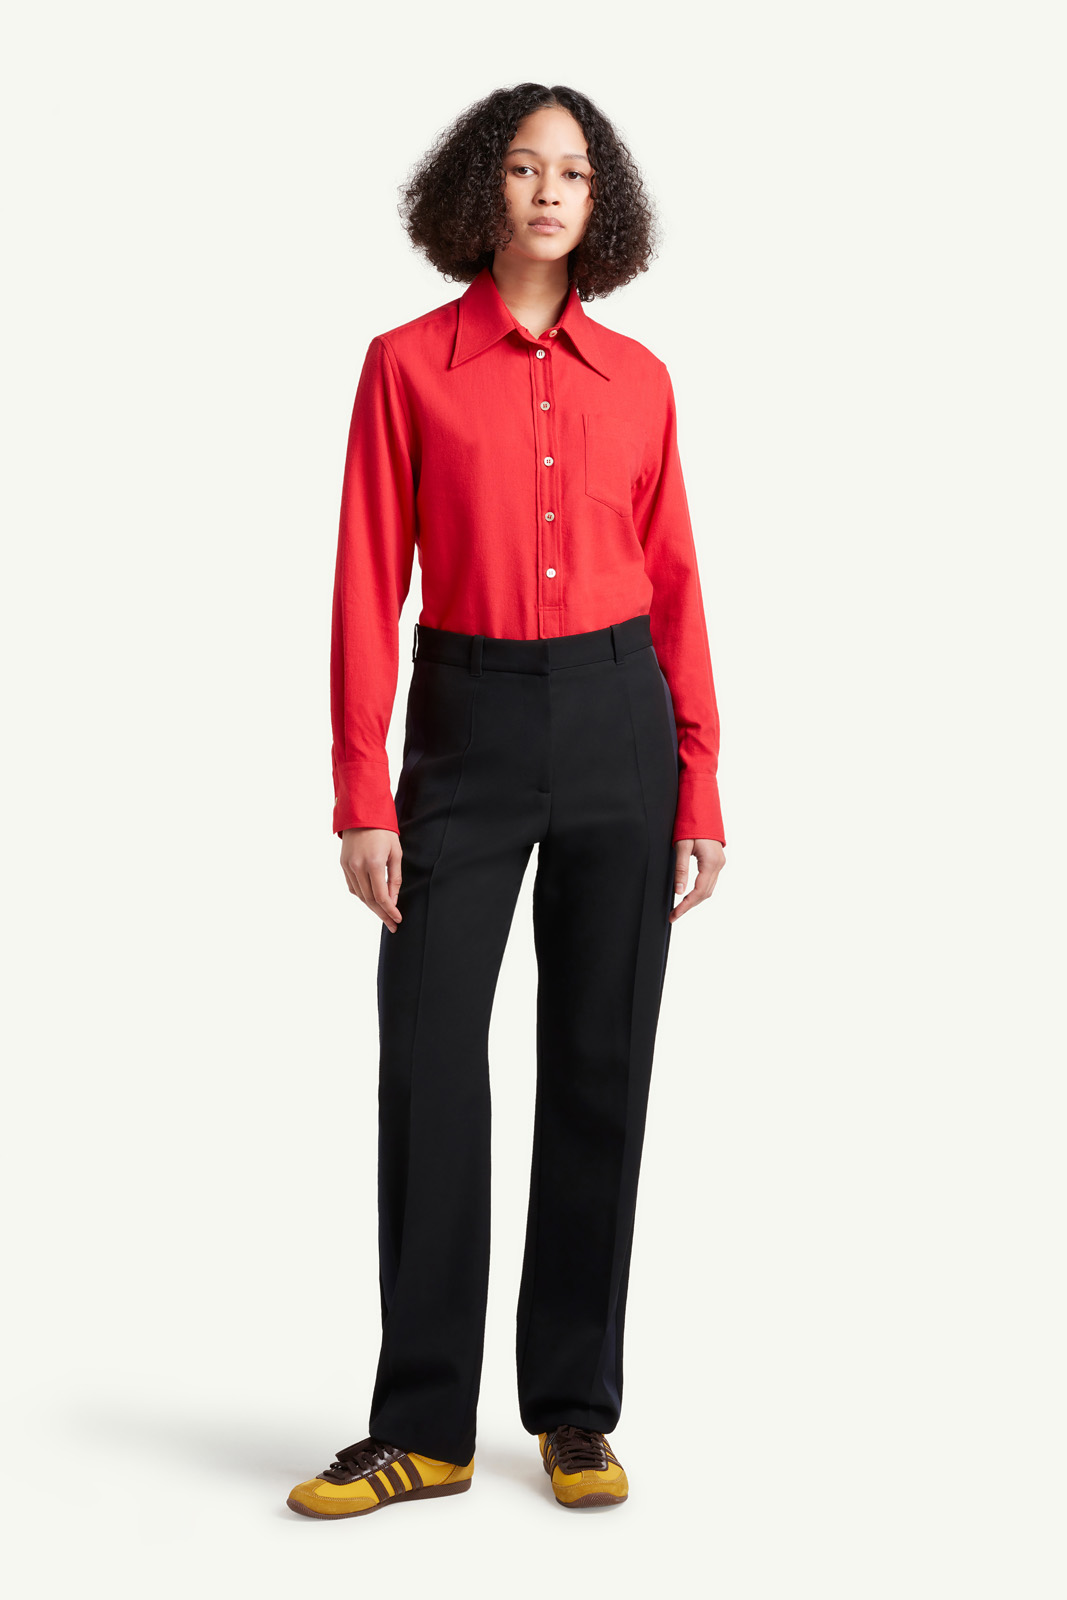 Womenswear model wearing Wales Bonner red shirt and smart black trousers with multi colour trainers